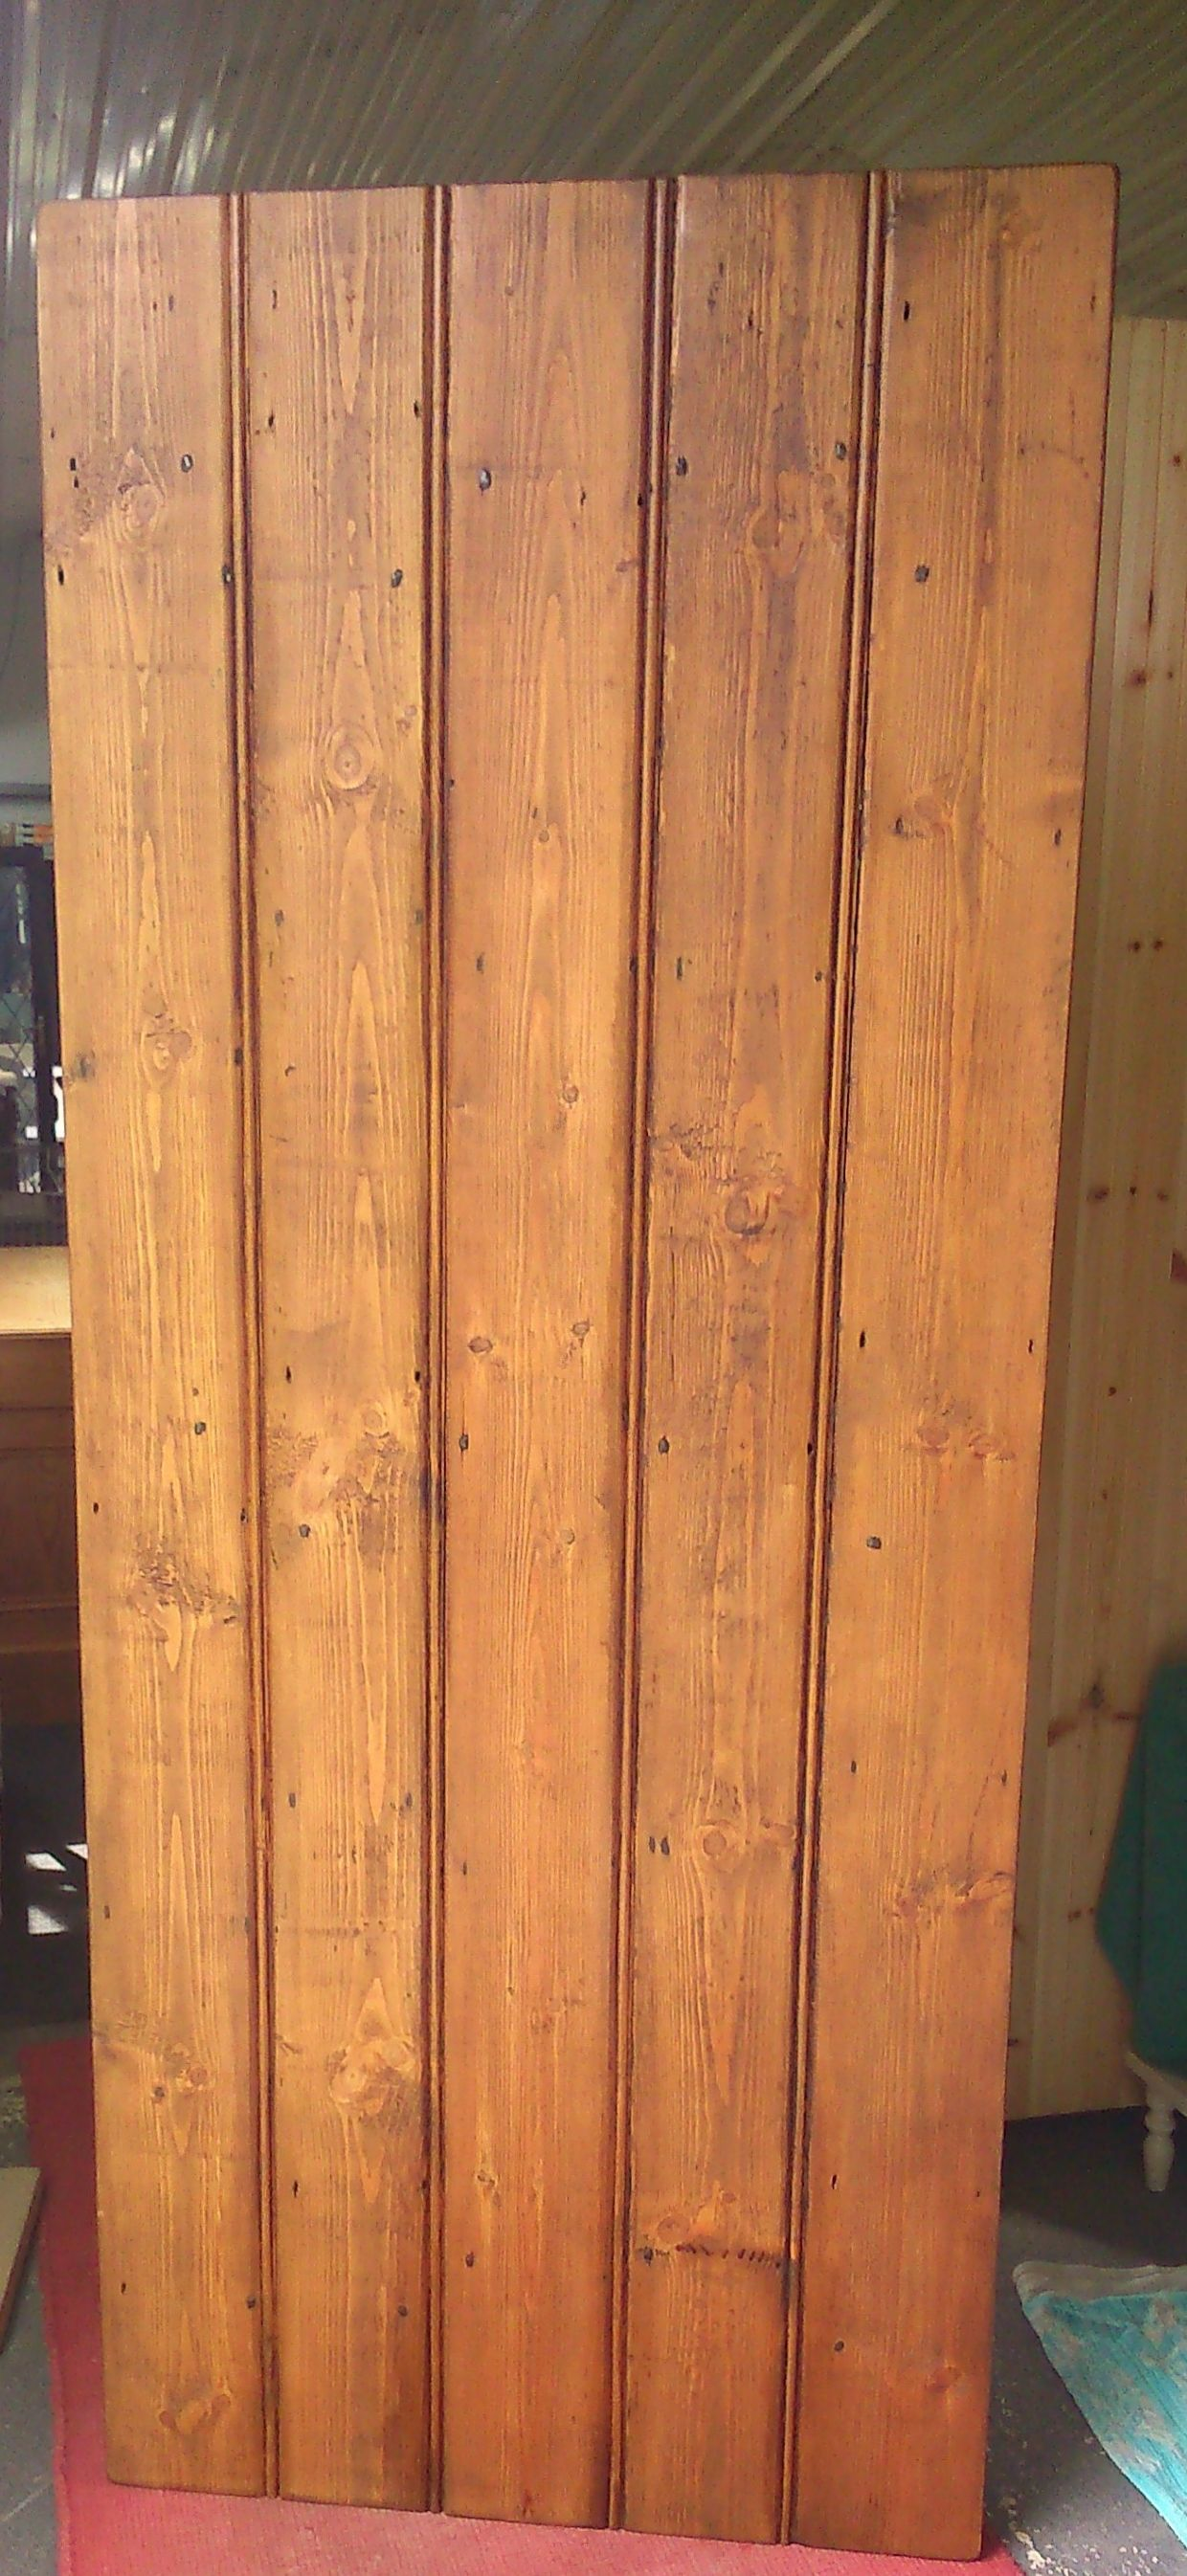 Reclaimed pine waxed finish old style cottage doors made